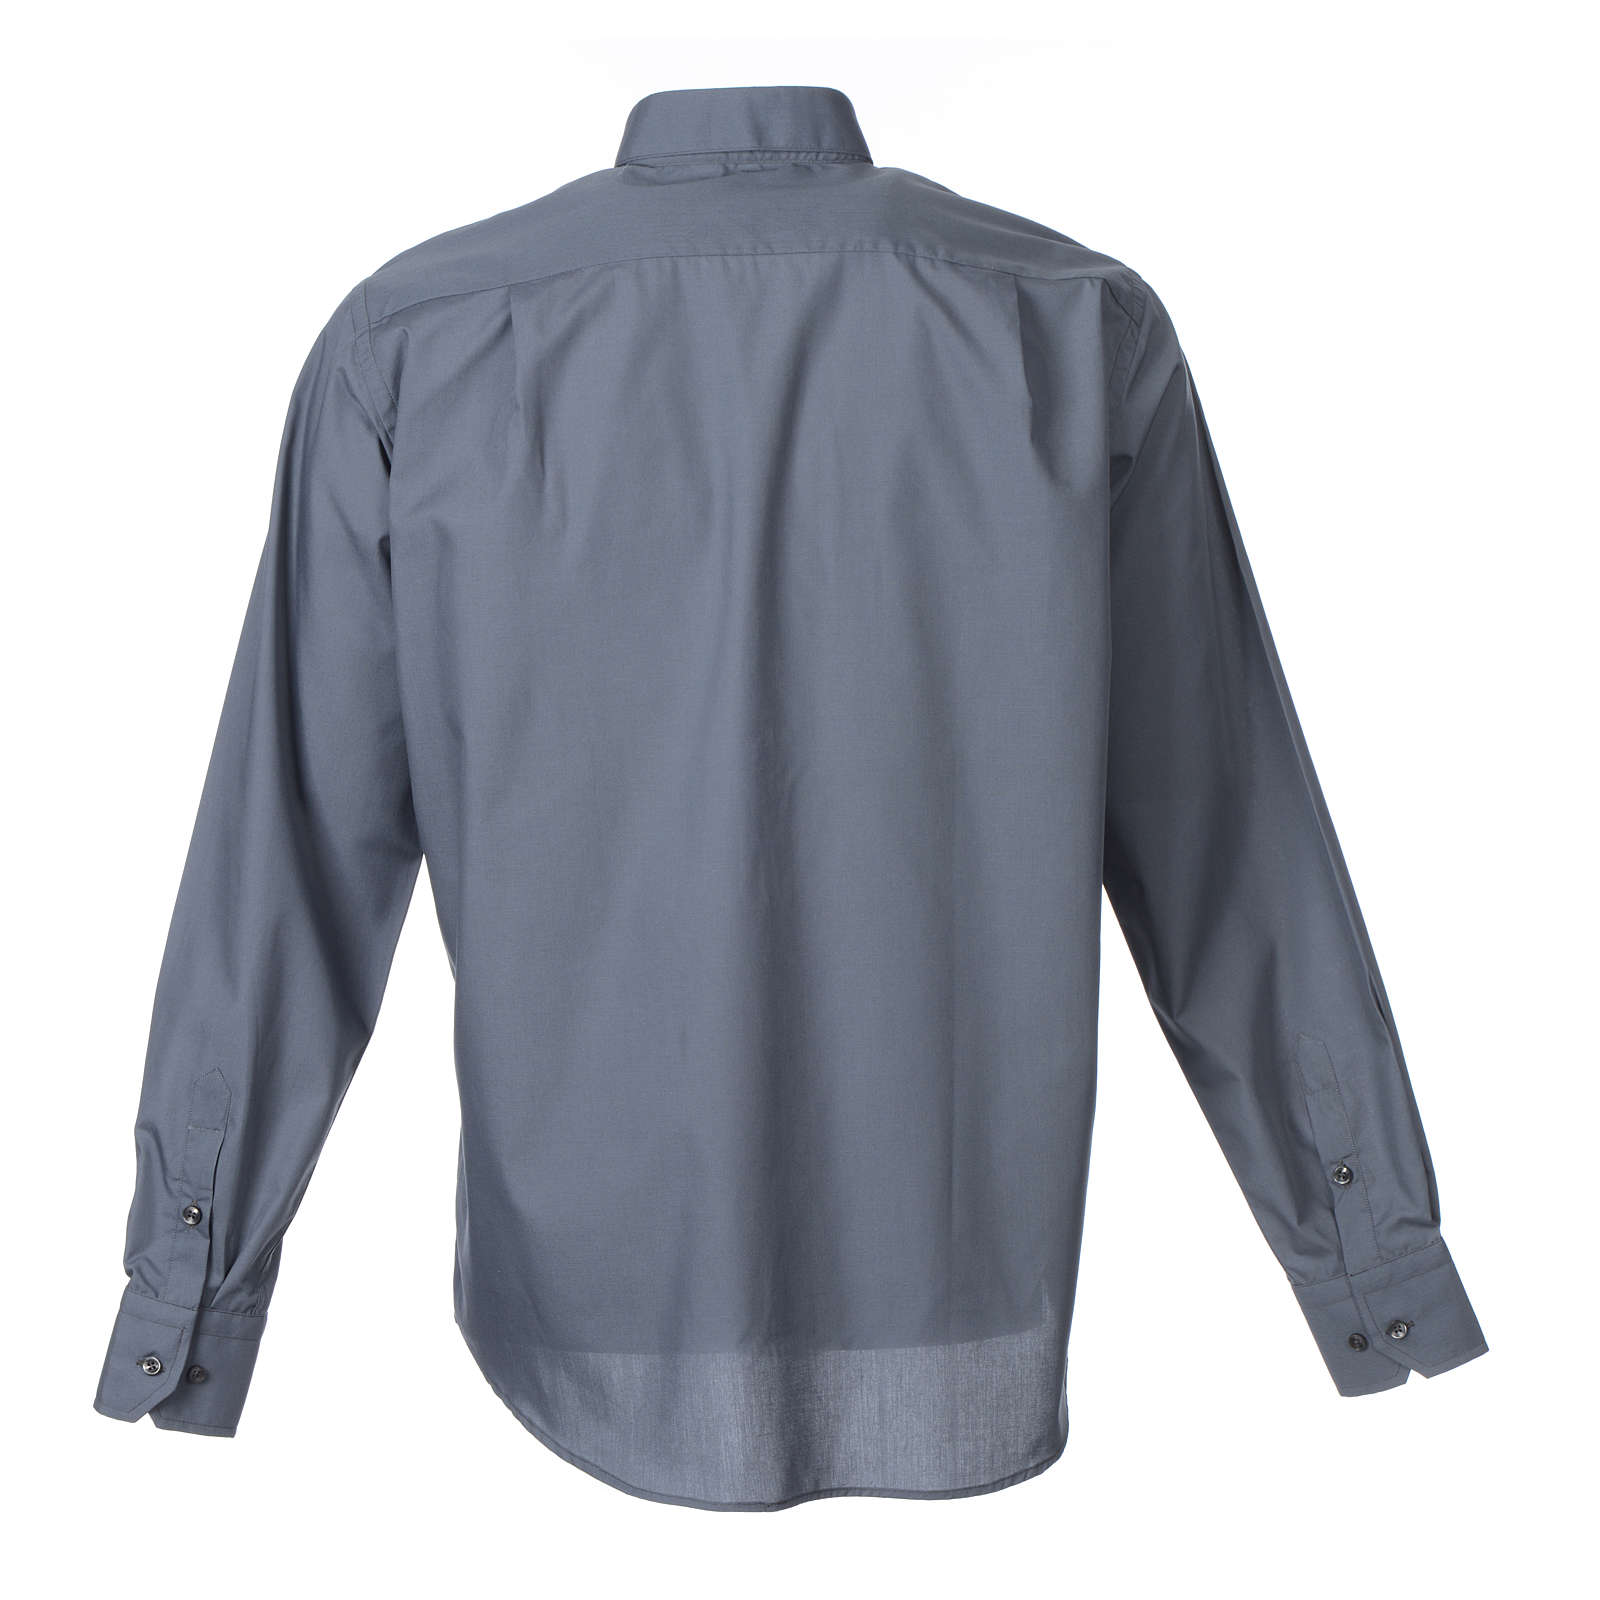 Clergy shirt long sleeves solid colour mixed cotton Dark Grey 4